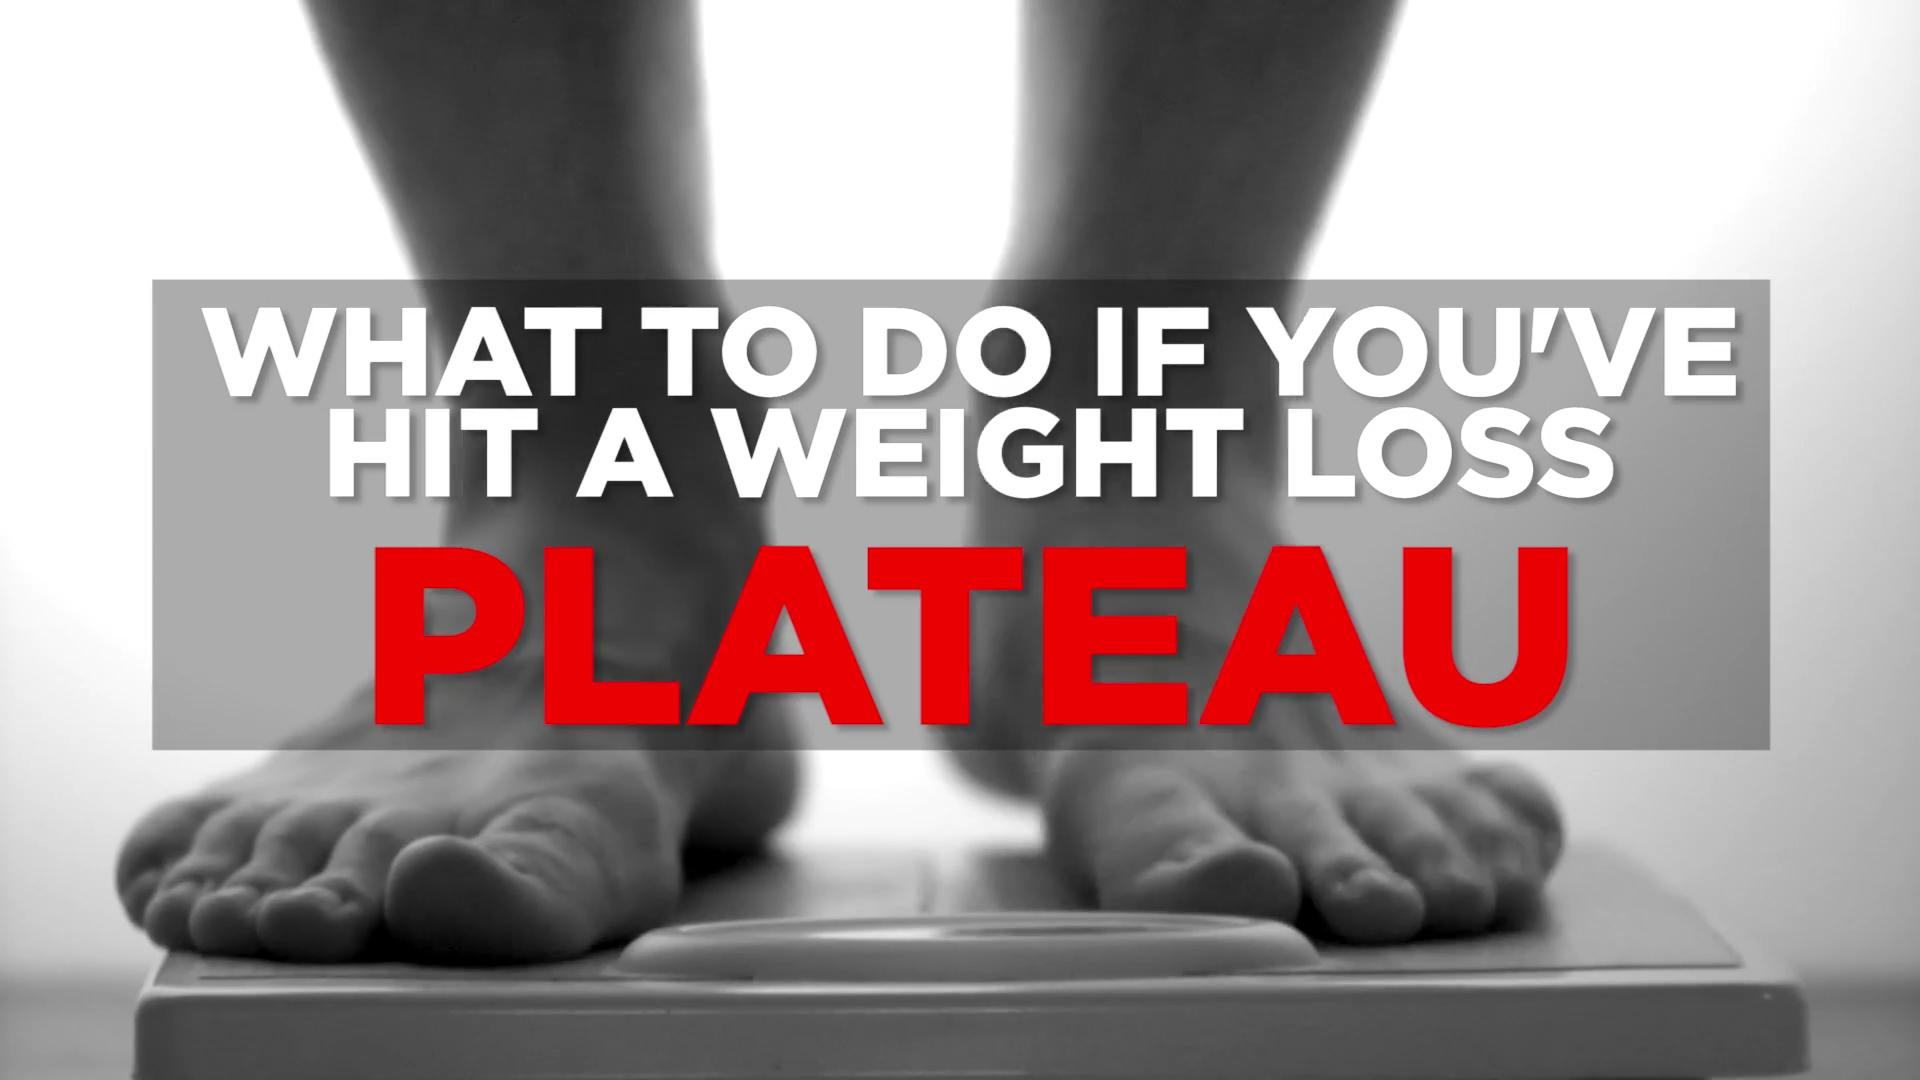 Overcome a weight loss plateau